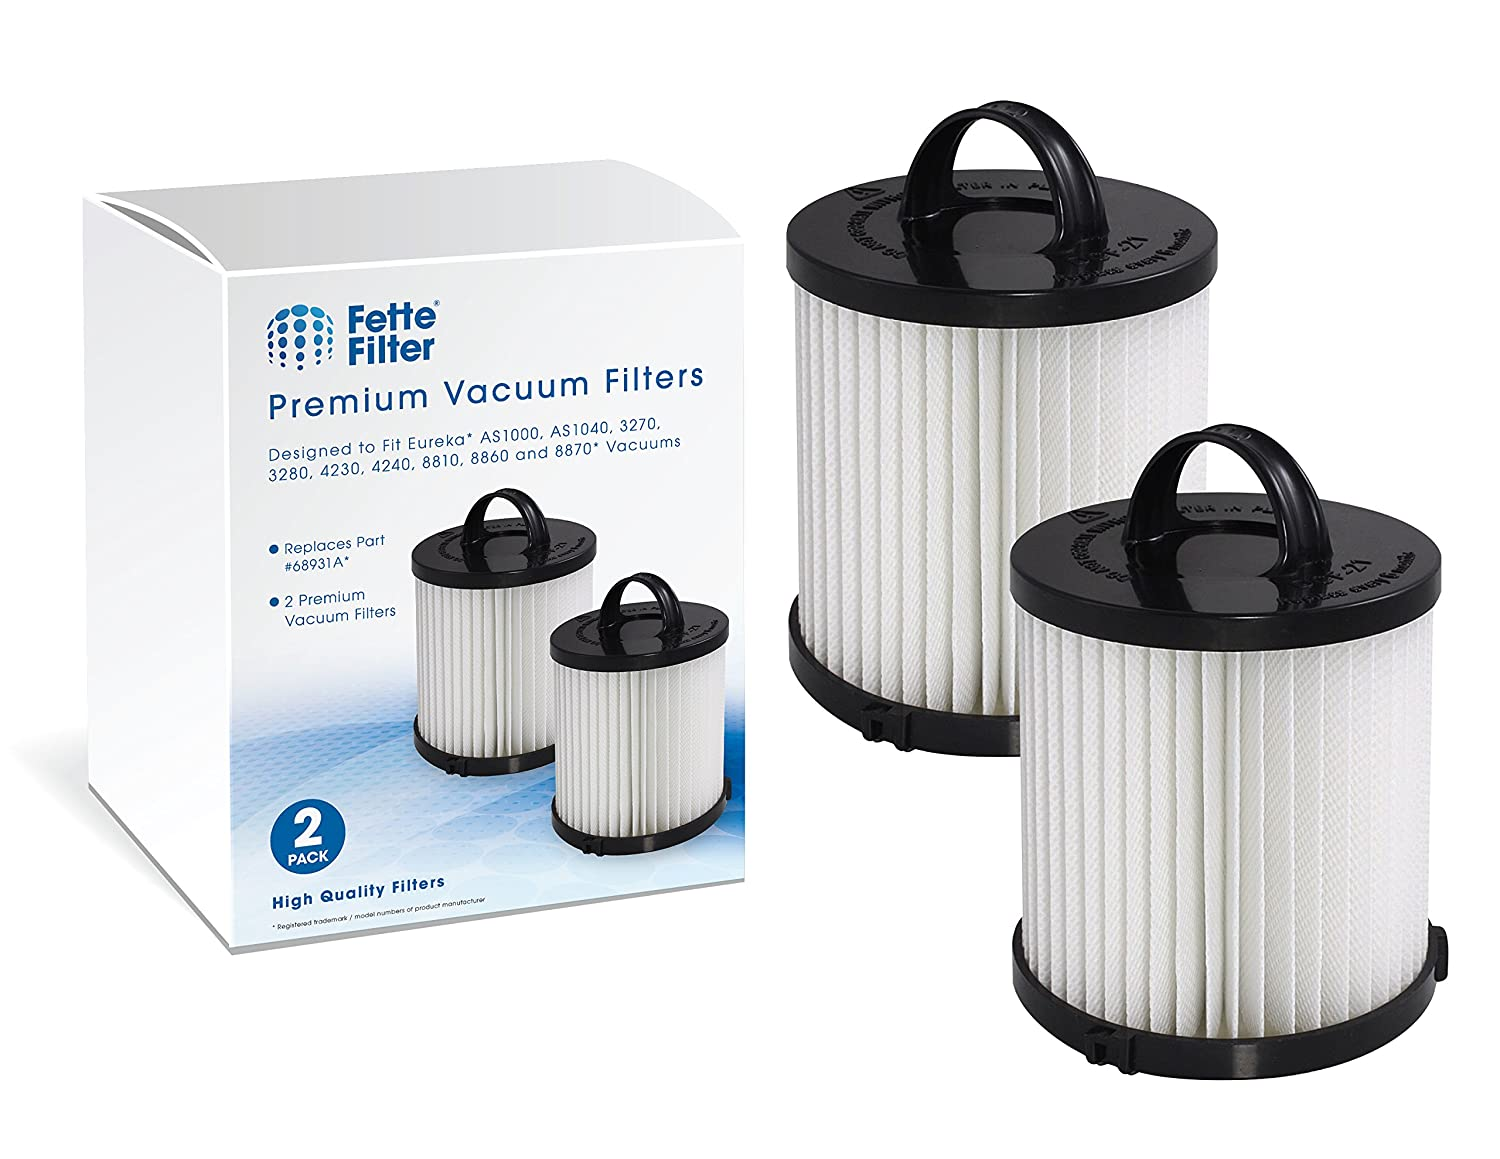 Fette Filter - Vacuum Filter Compatible with Eureka DCF-21. Compare to Part # 67821, 68931, 68931A, EF91. Pack of 2